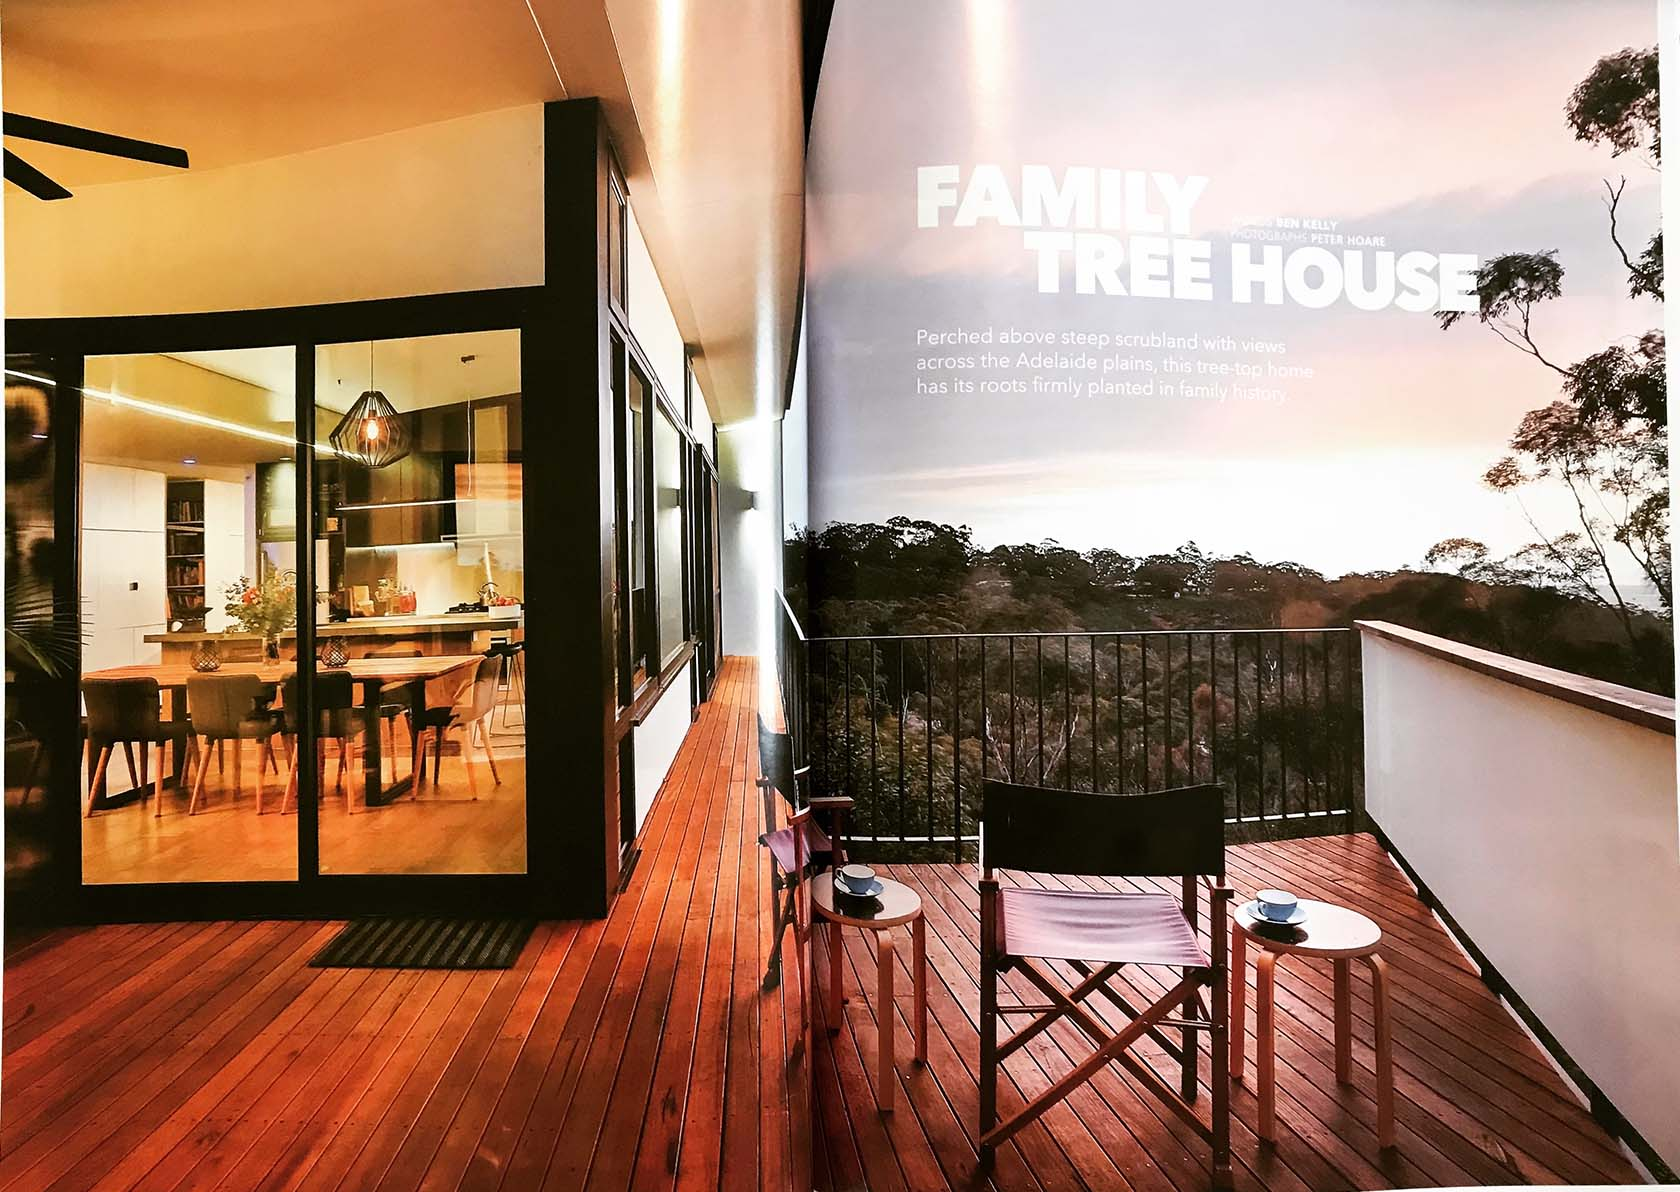 https://www.facebook.com/SALIFEmagazine/  https://salife.com.au/  #khabarchitects #paintcolour #adelaidehouse #awardwinningarchitecture  #architect #architecturelovers #architect #architecturephotography #architectureporn #architects #architectural #architecturelover #architecturestudent #architecturalphotography #architecturedesign #architectanddesign #architecturephoto #architecturaldesign #architectureschool #architecturaldigest #architecturesketch #architecturemodel #architectura #Architecte #architecturelife #architecturegram #architectureandpeople #architecturelove #architecturedaily #buildings #adlarchigram #courtyardhouse @adelaide_photographer @custombuiltprojects @boraltimbers @revolutionroofing #pressedtin #naturaltimber #dulux #duluxcolour #adelaide #khabarchitects #paintcolour #adelaidehouse #awardwinningarchitecture